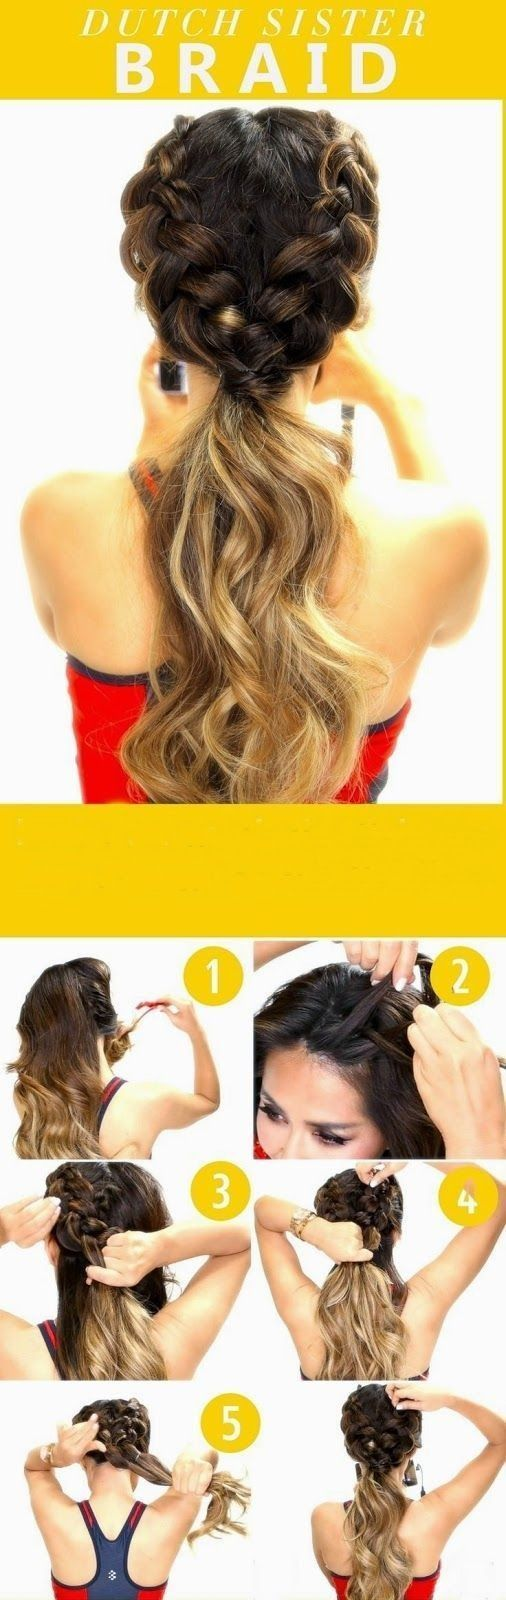 10 Super-easy Trendy hairstyles for summer